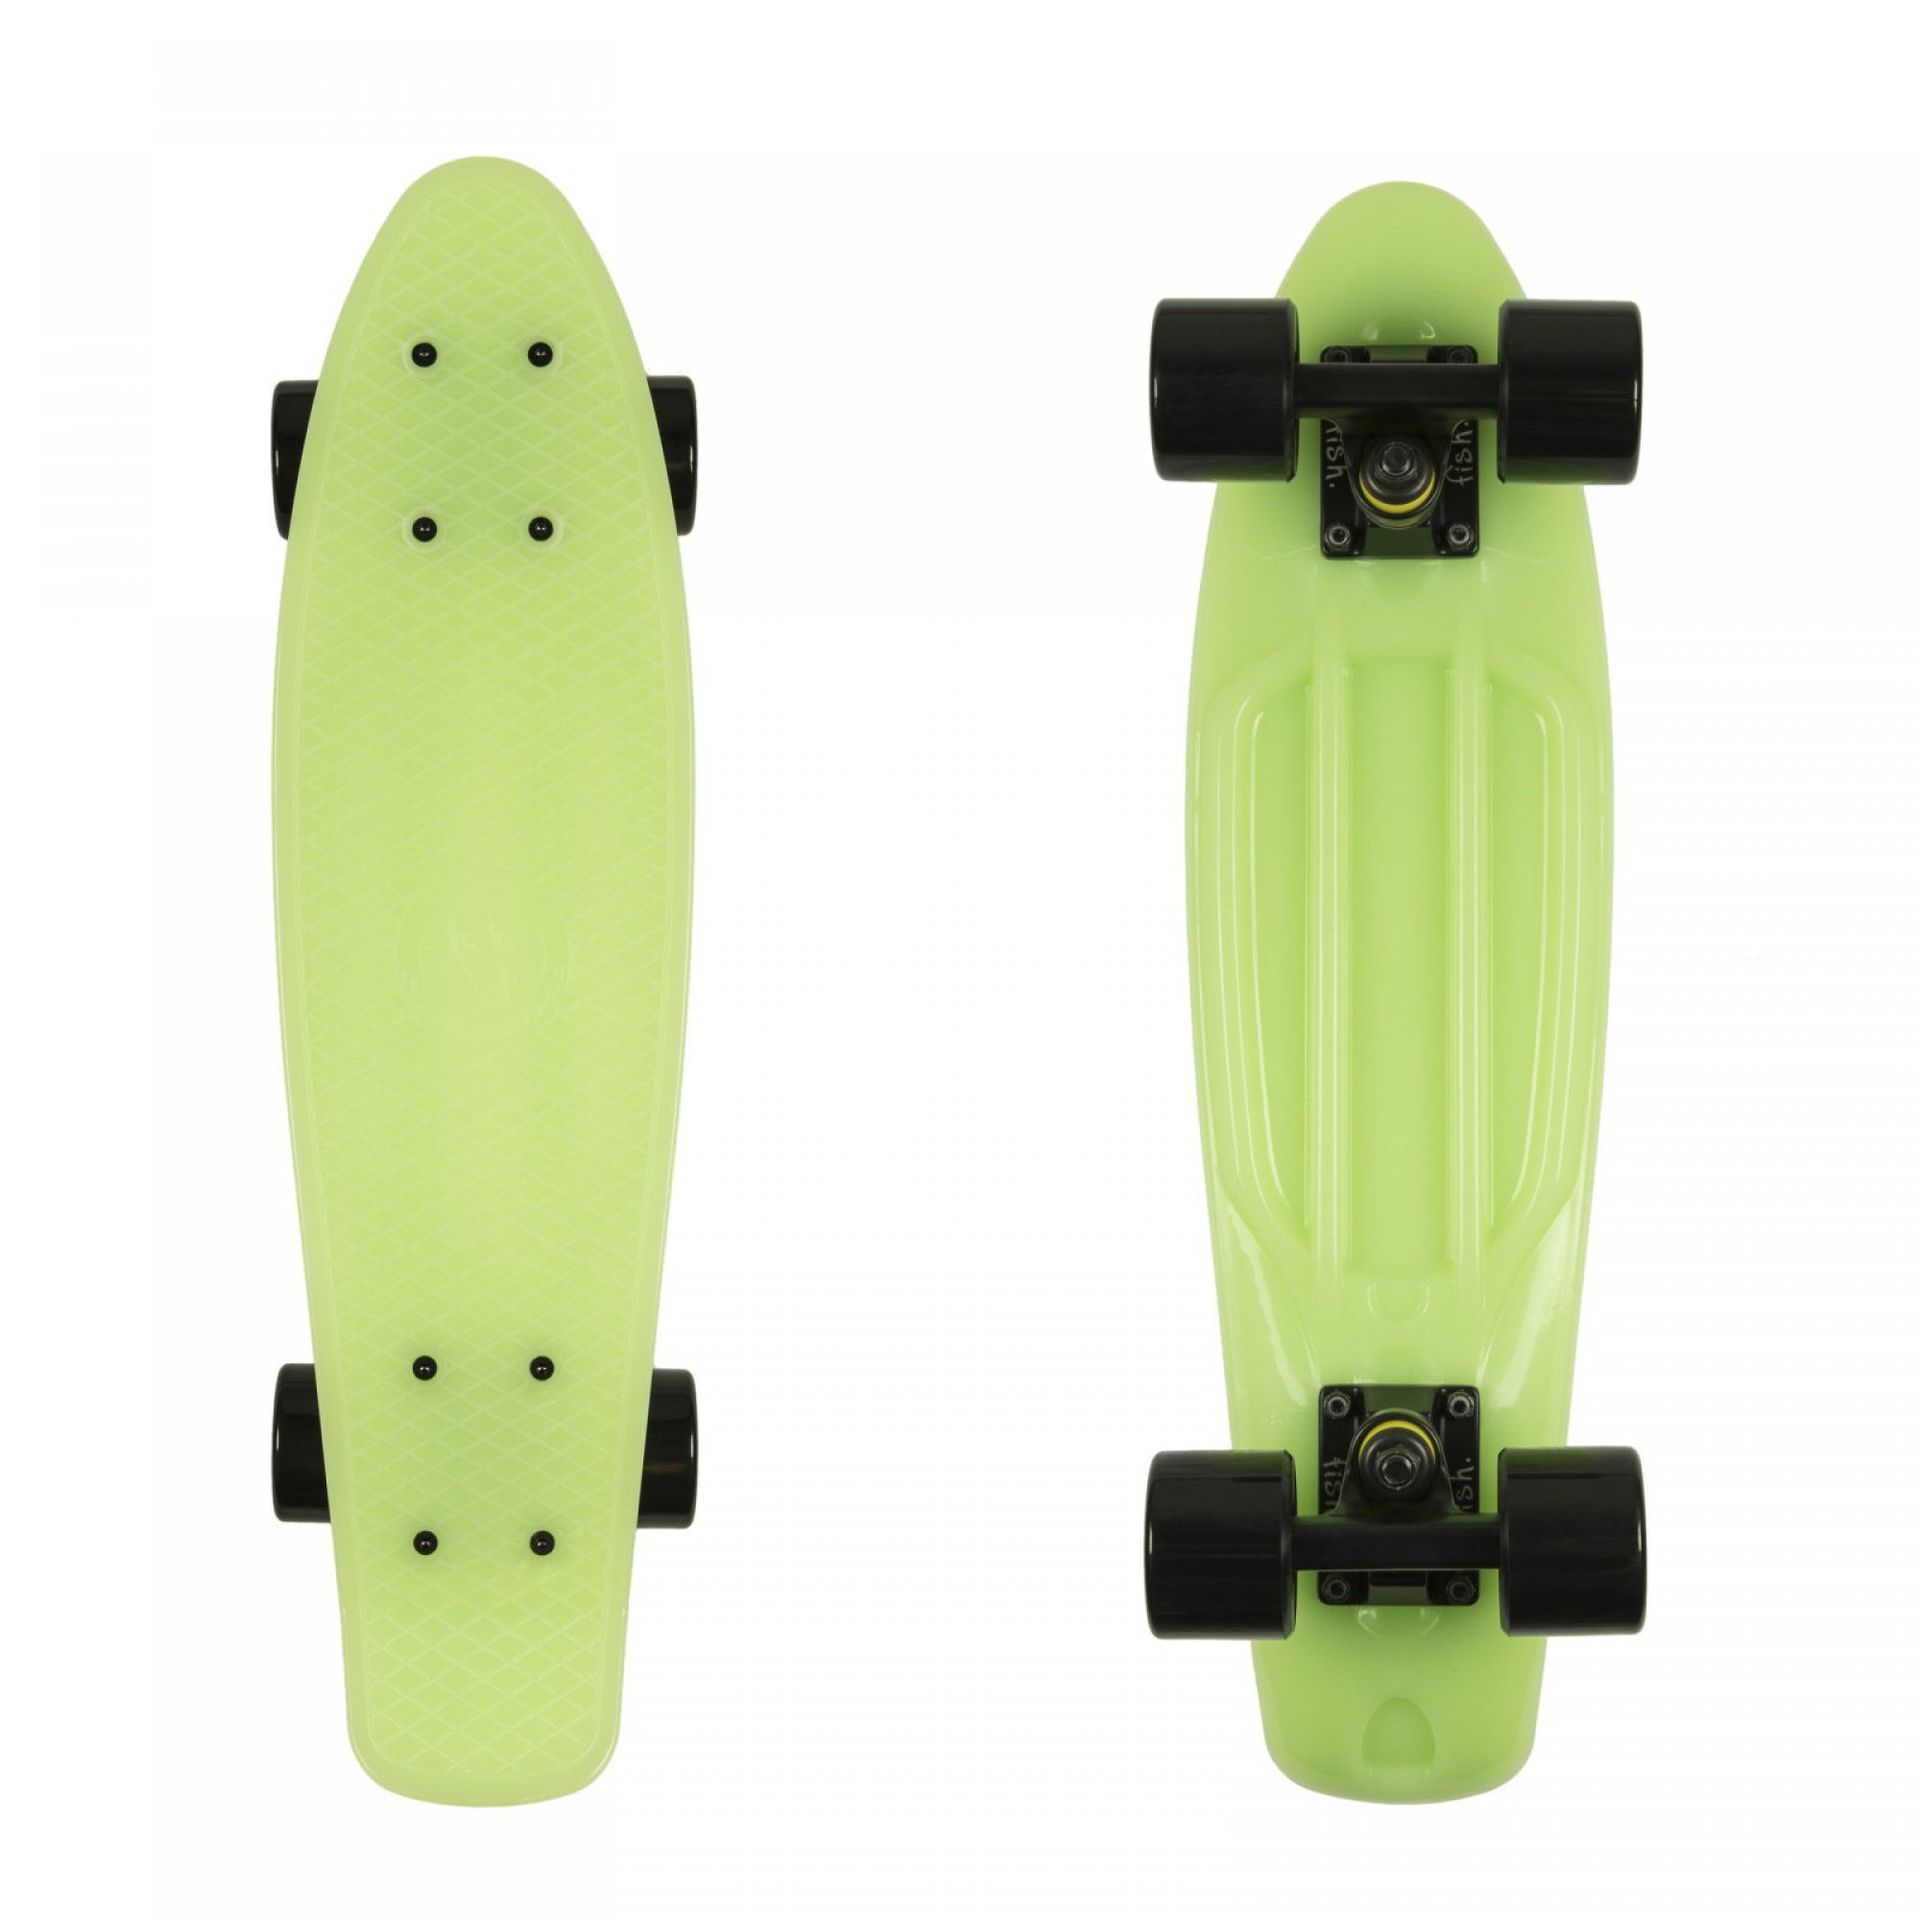 FISHBOARD FISH SKATEBOARDS CLASSIC GLOW GREEN|BLACK 1